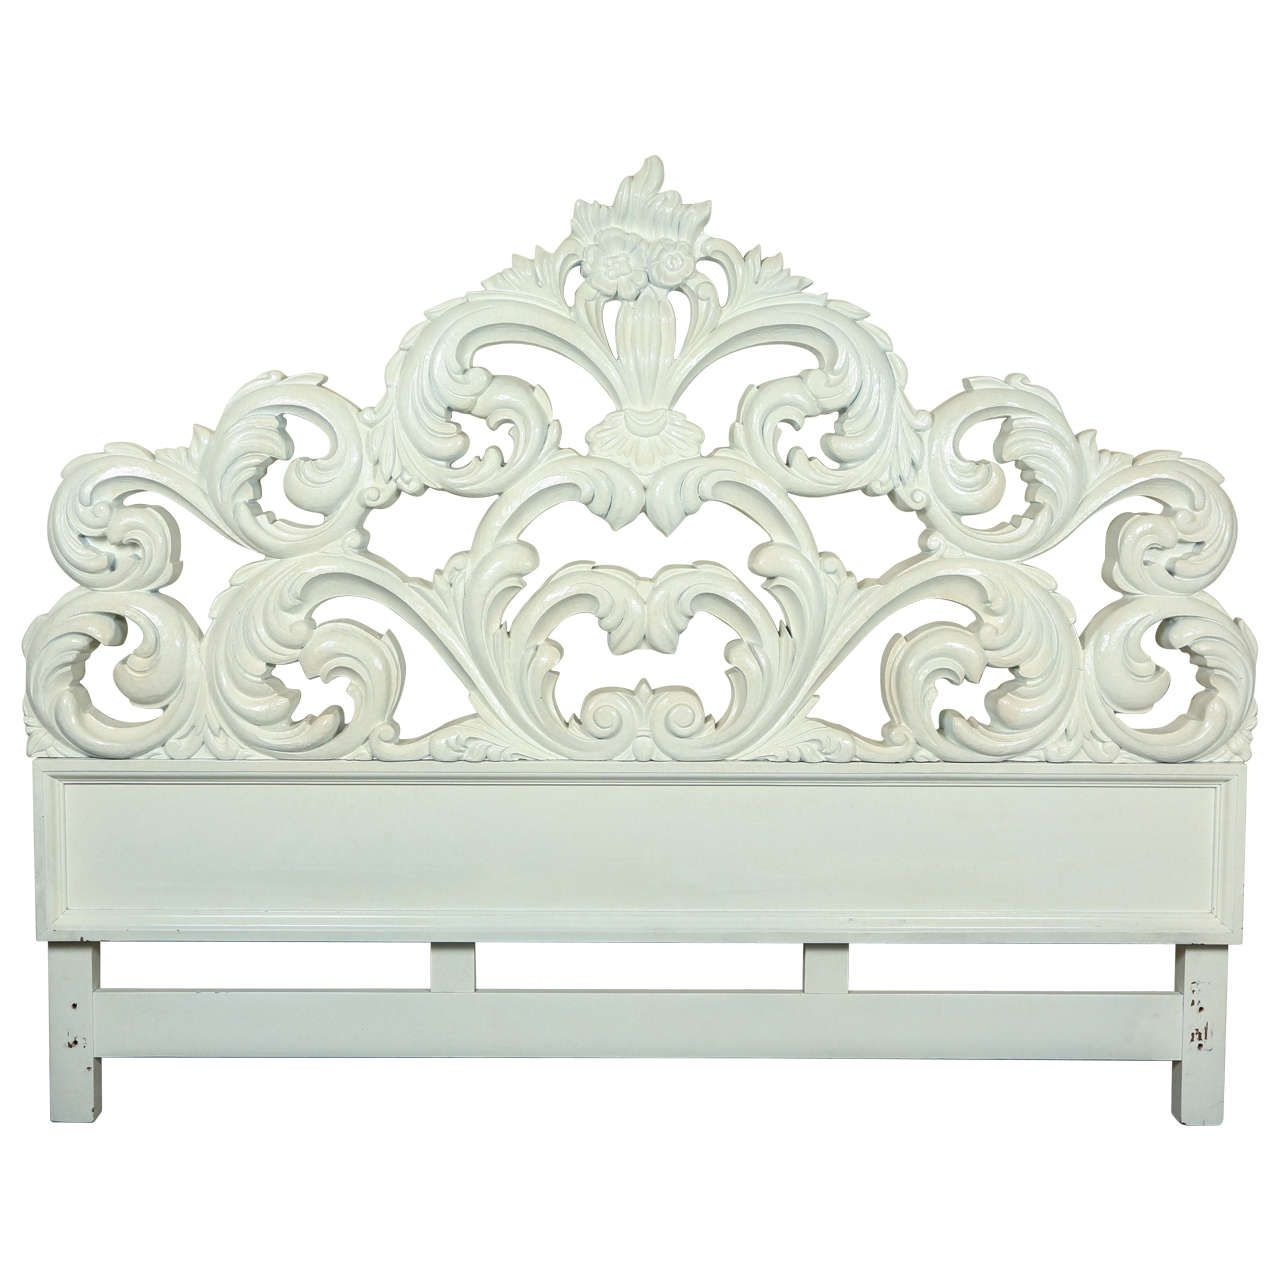 Glamorous Carved Wood Baroque Headboard Wood Headboard Bed